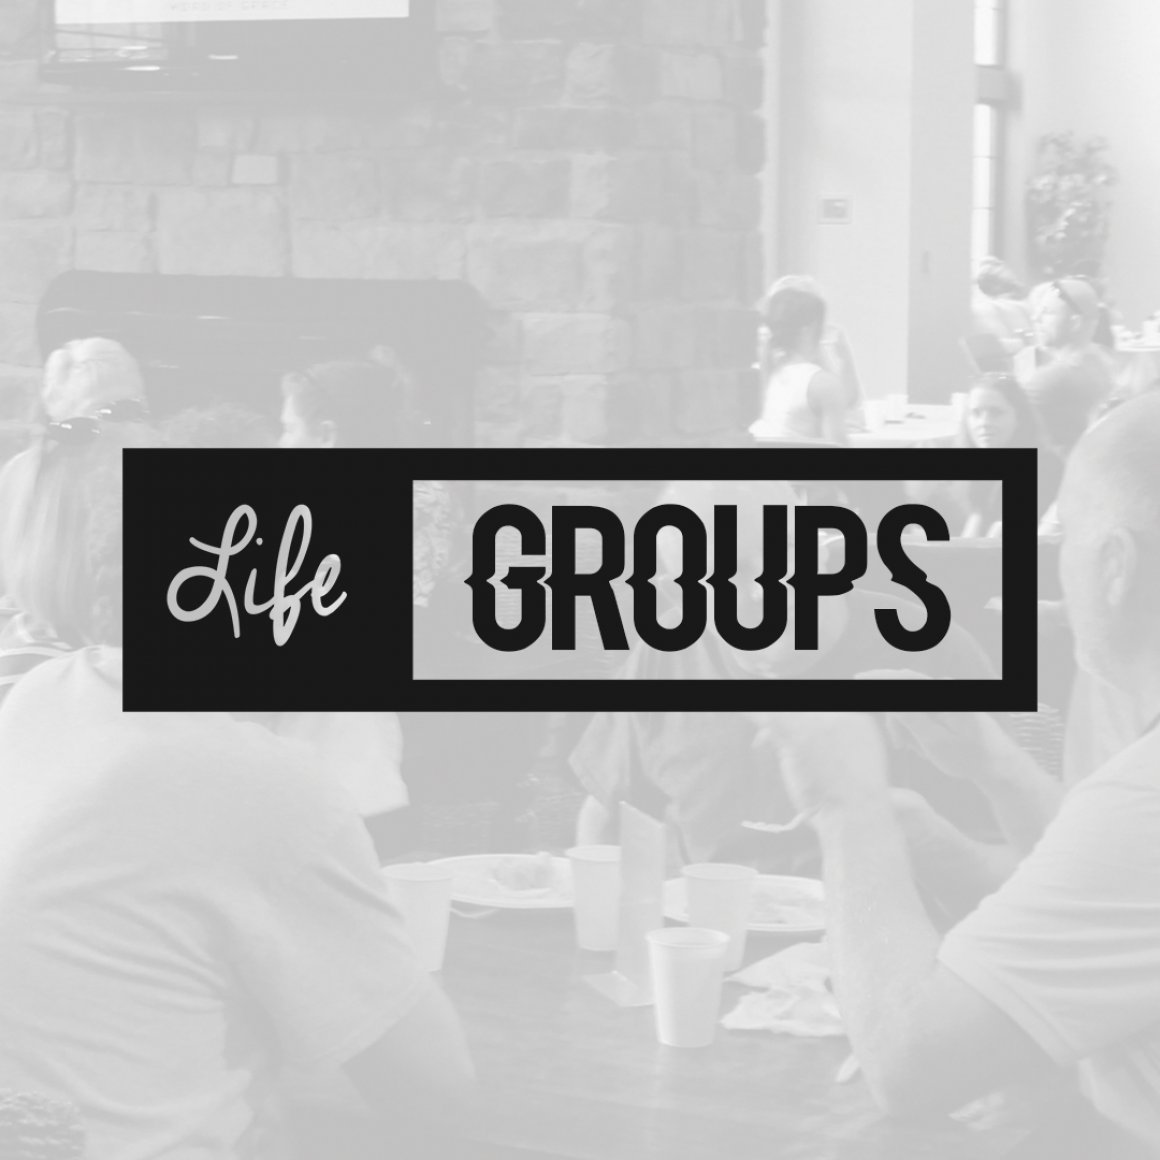 LifeGroupsSquare